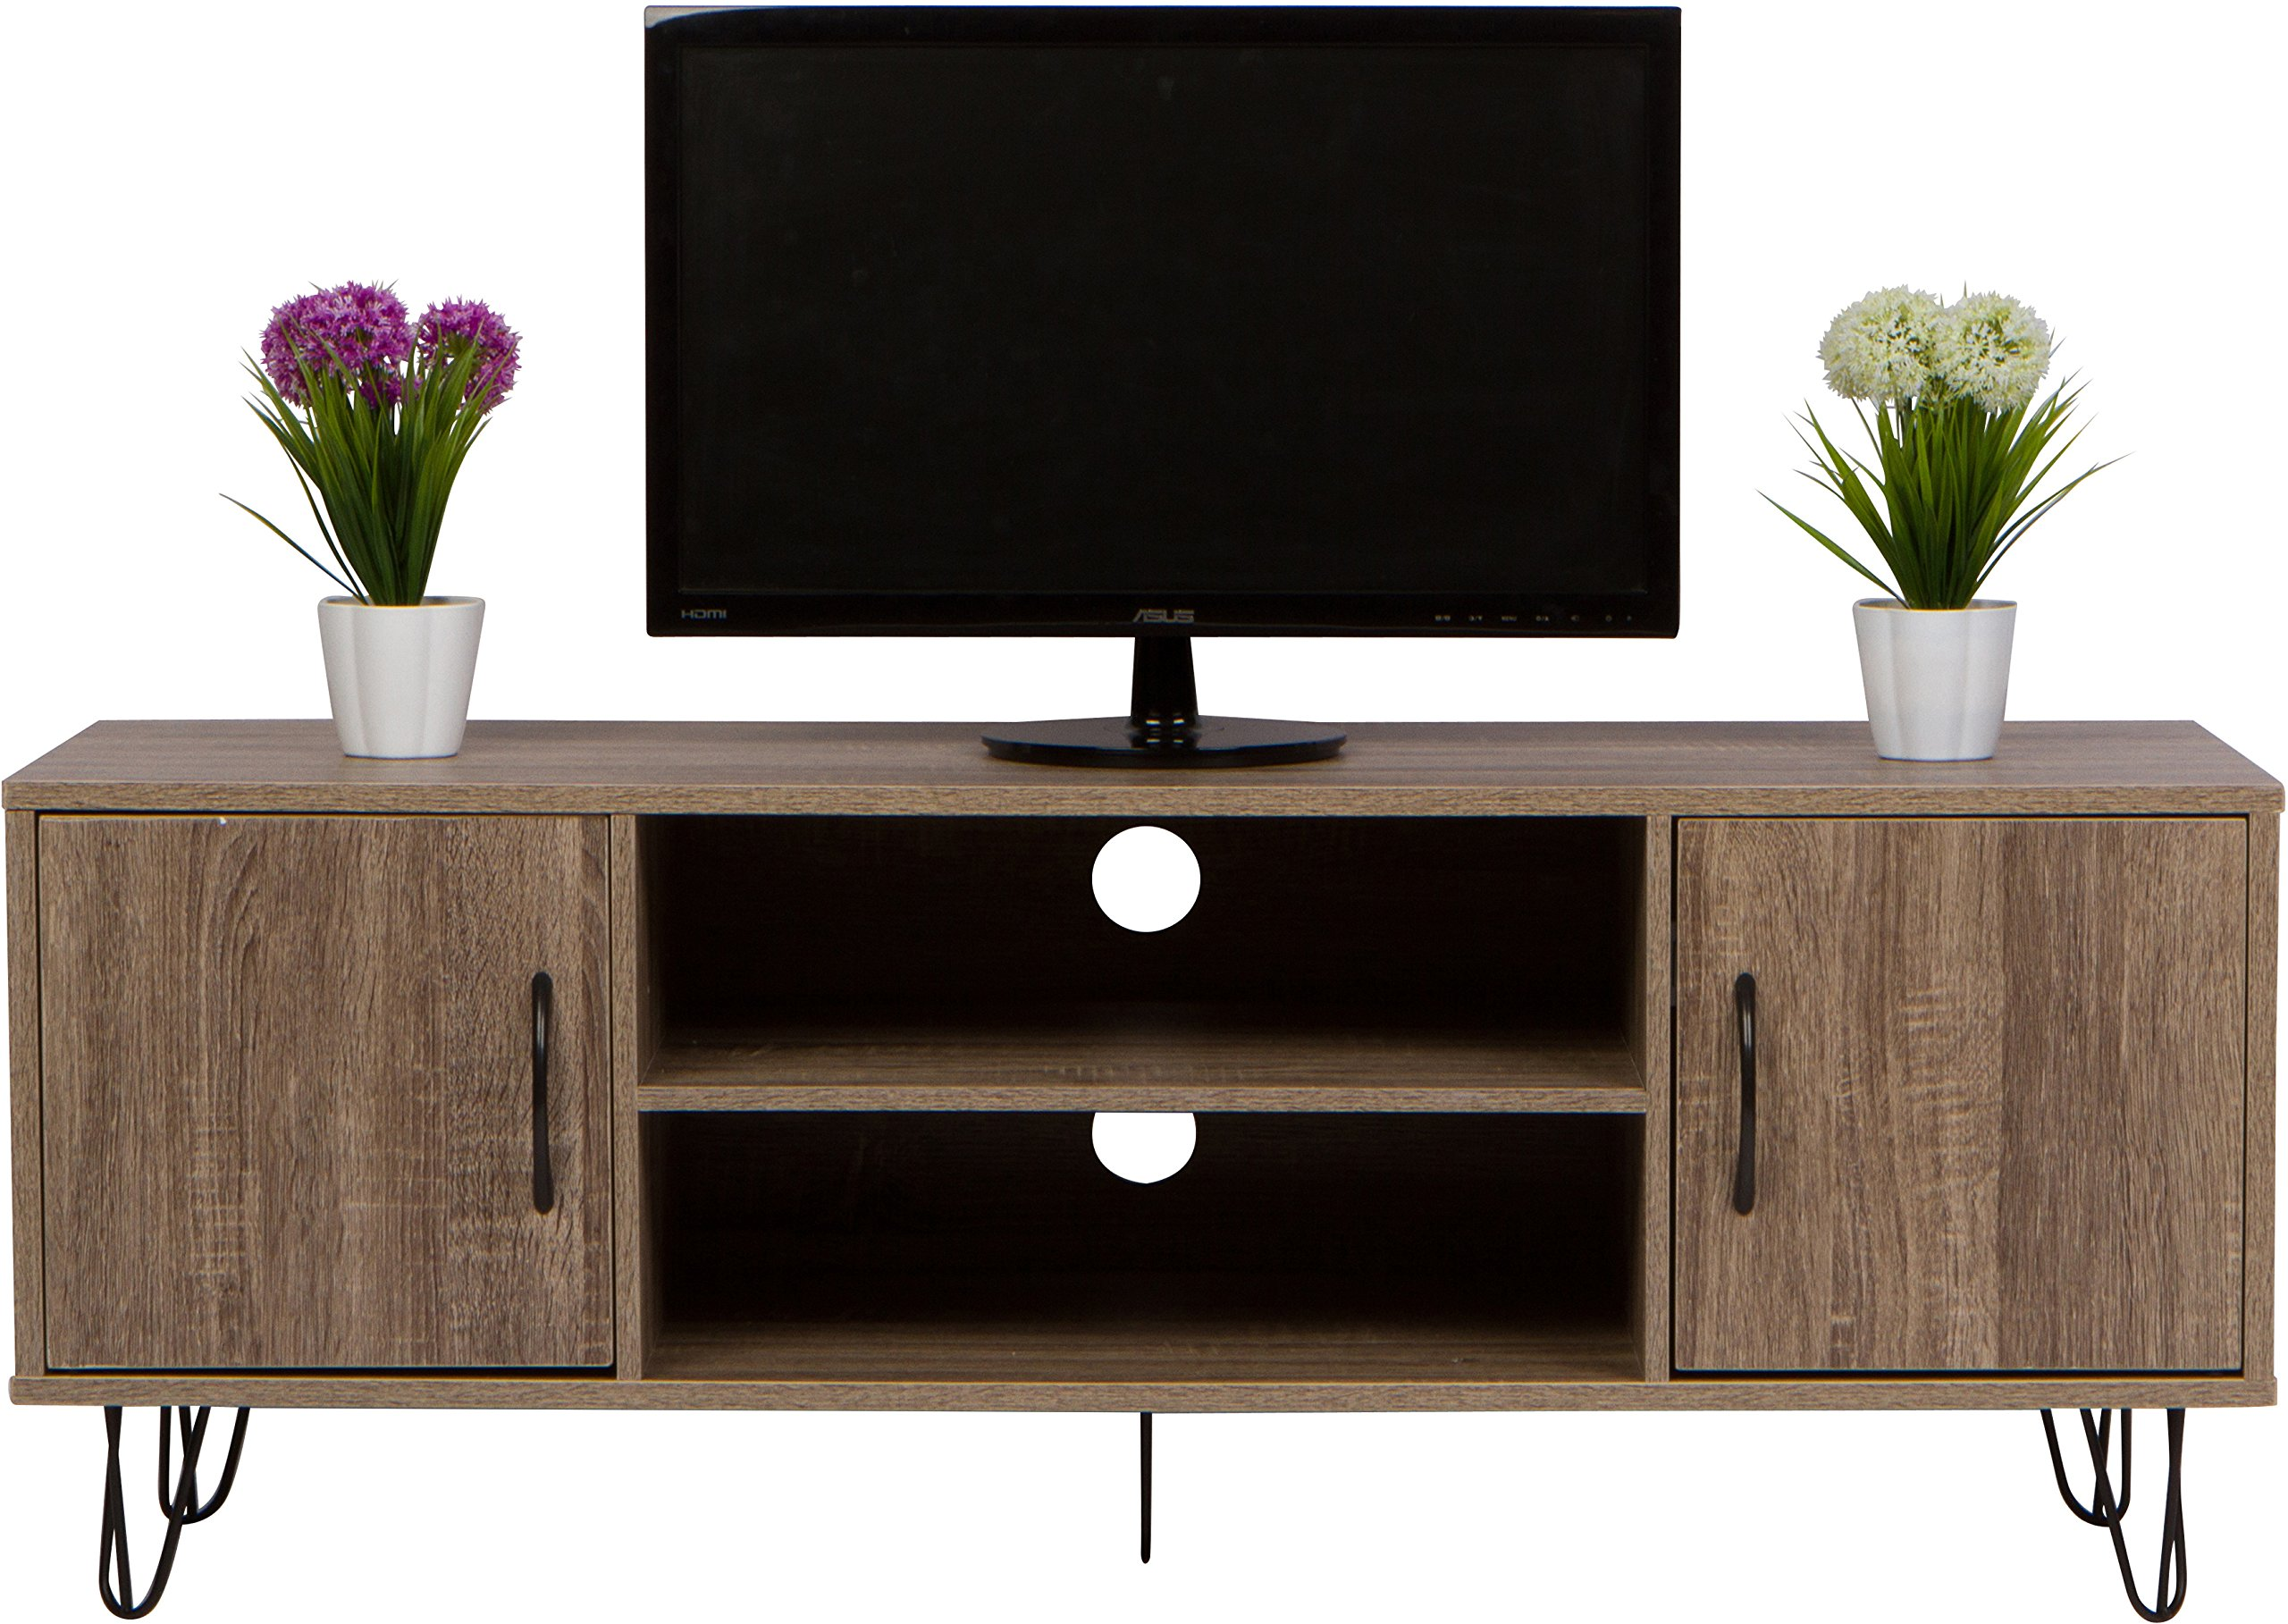 47'' Wood TV Media Stand and Entertainment Center Storage Console by Trademark Innovations